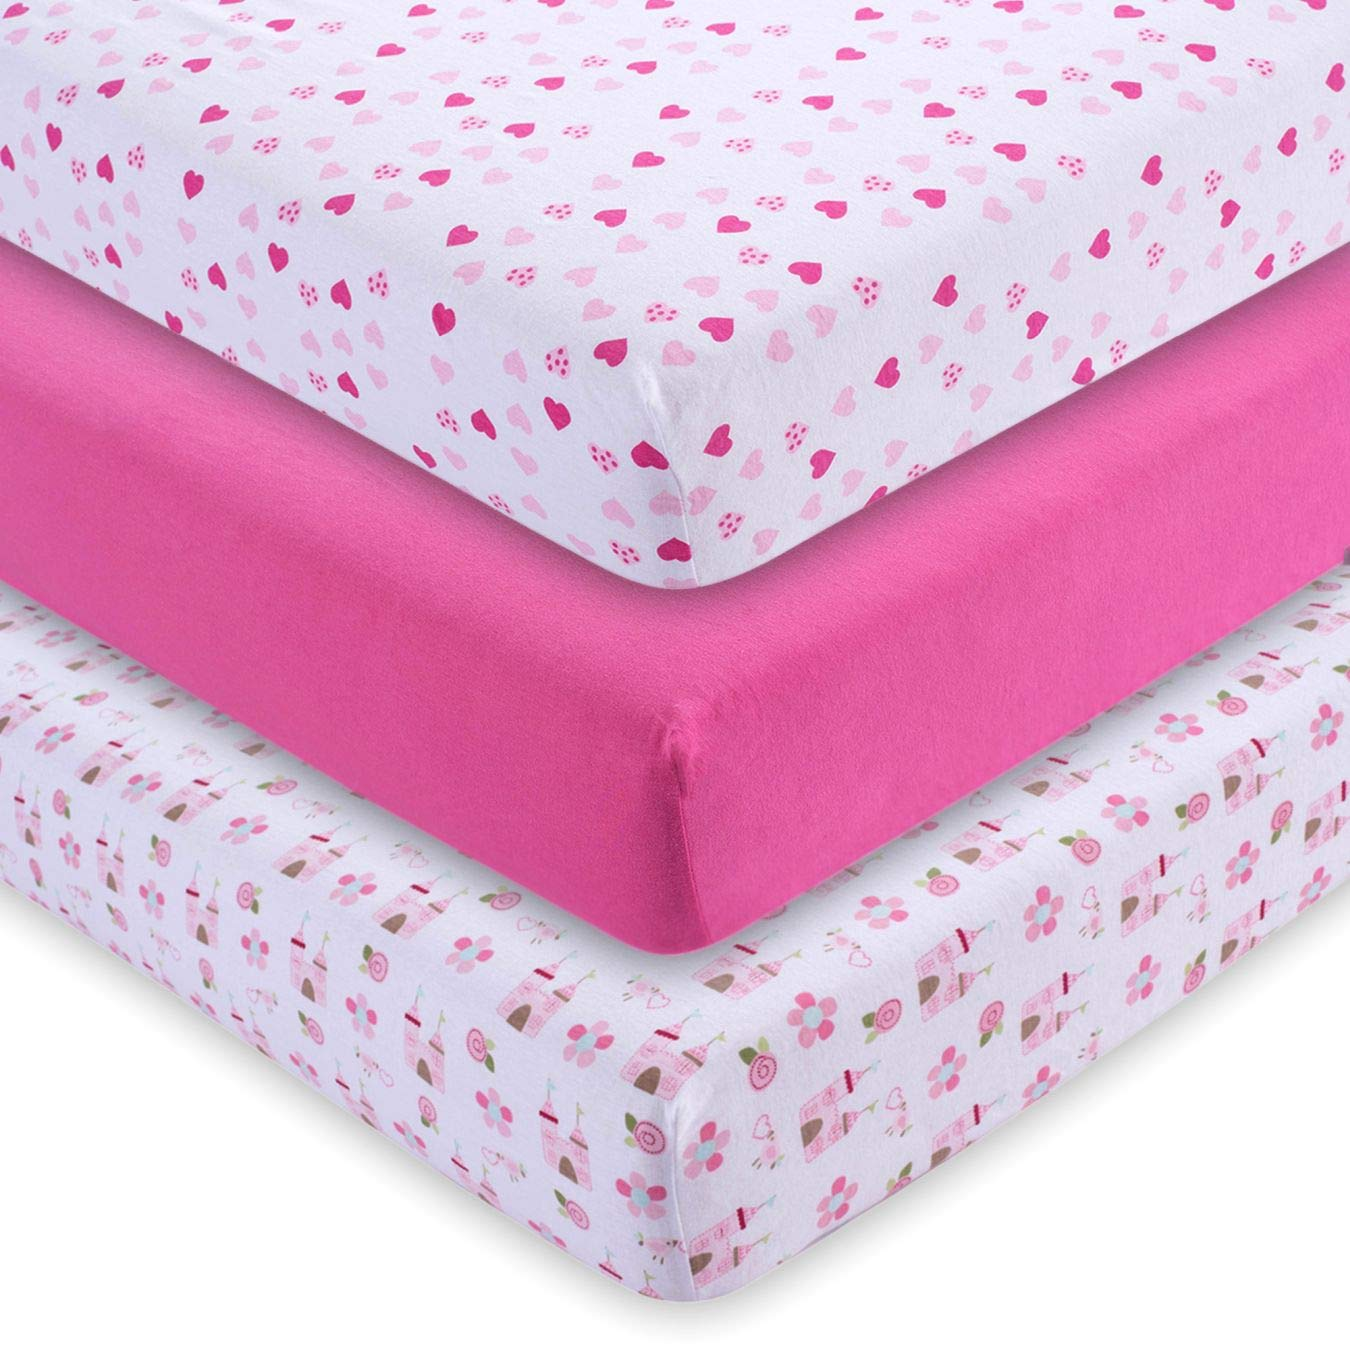 M&Y Fitted Crib Sheets (3-Pack), Girls, 52x28x9 in by M&Y